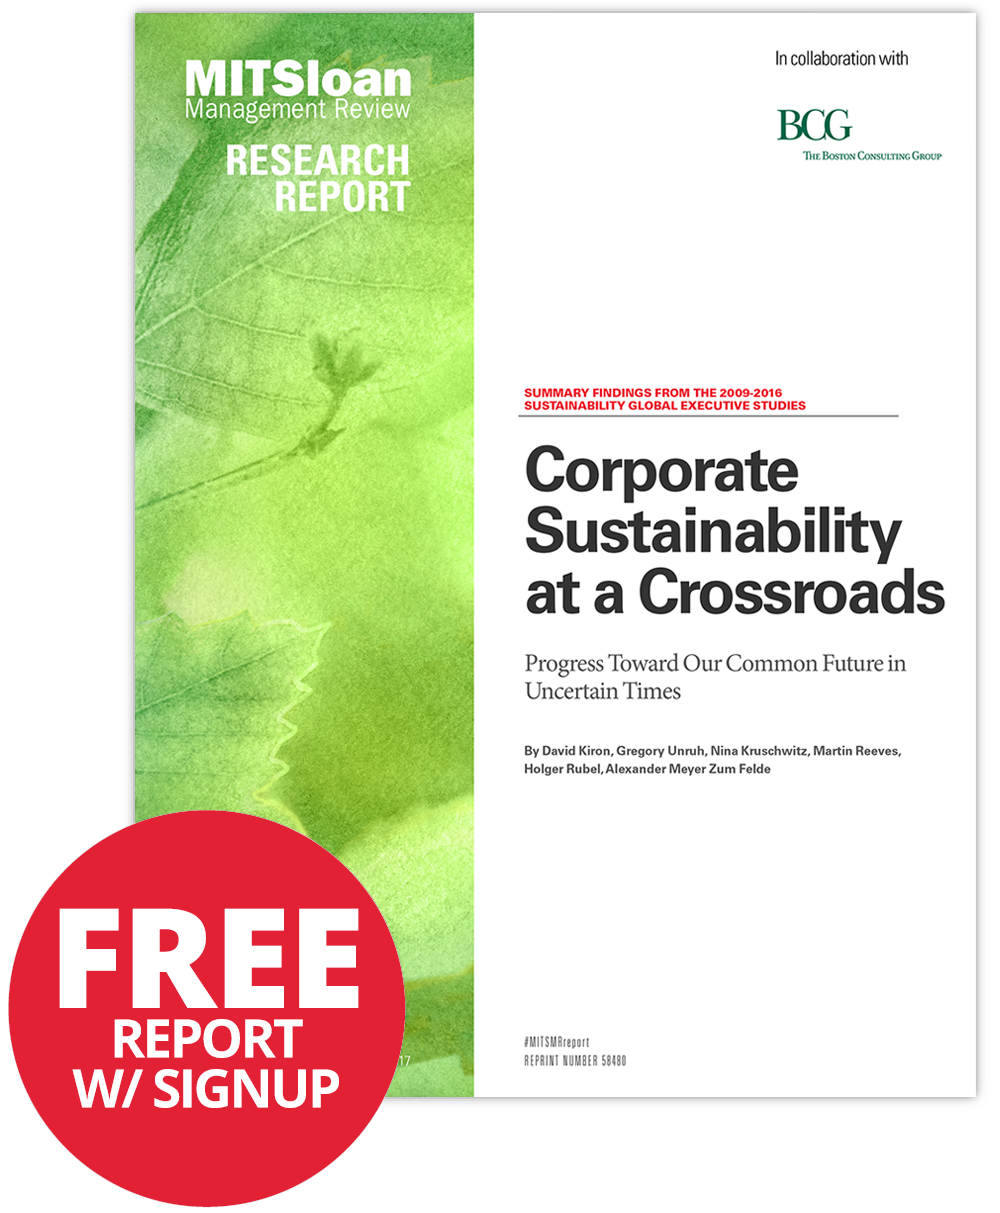 2017 Sustainability Global Executive Study and Research Report